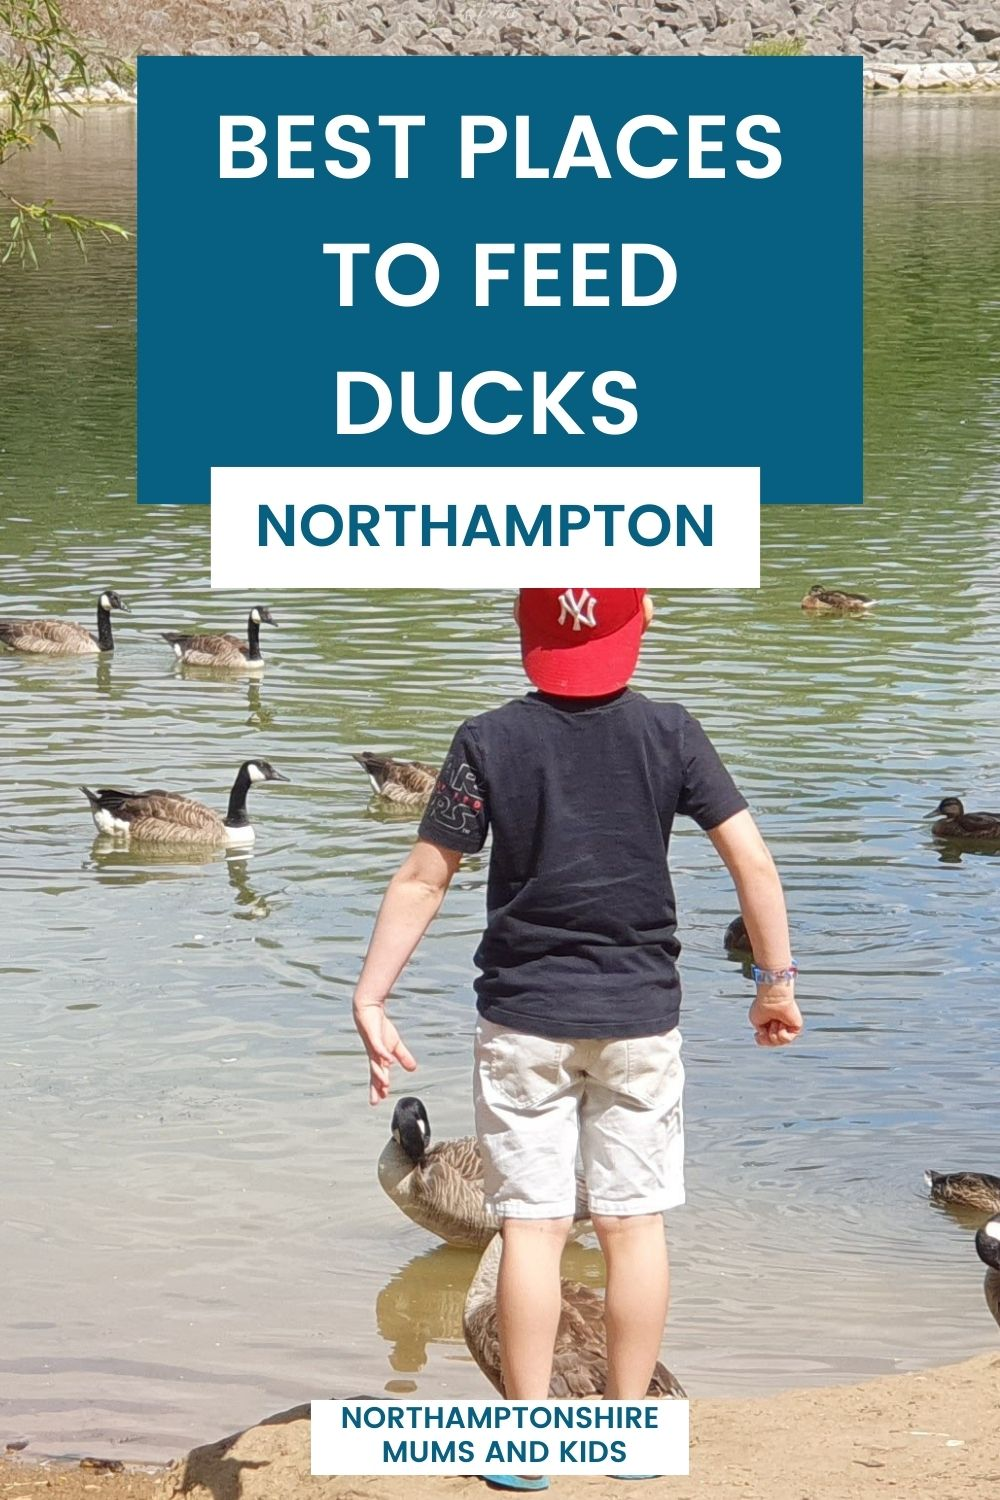 Best Places To Feed Ducks In Northamptonshire